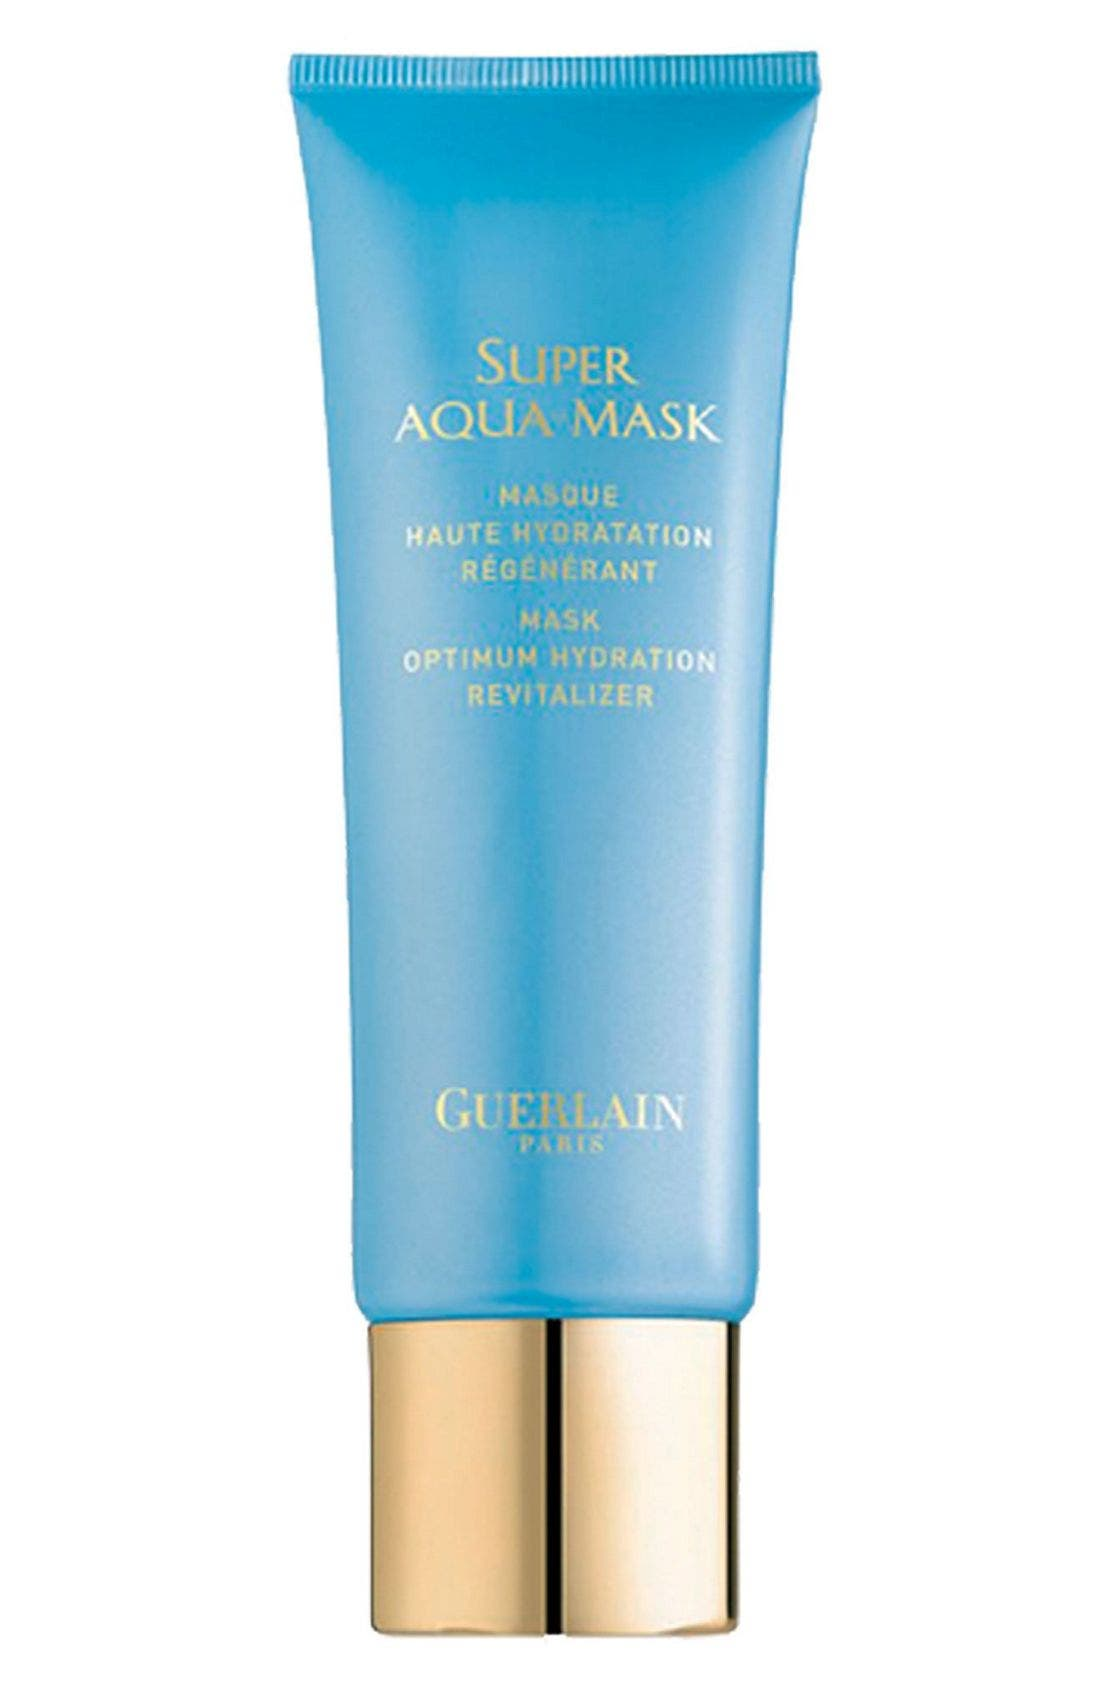 Guerlain 'Super Aqua' Mask